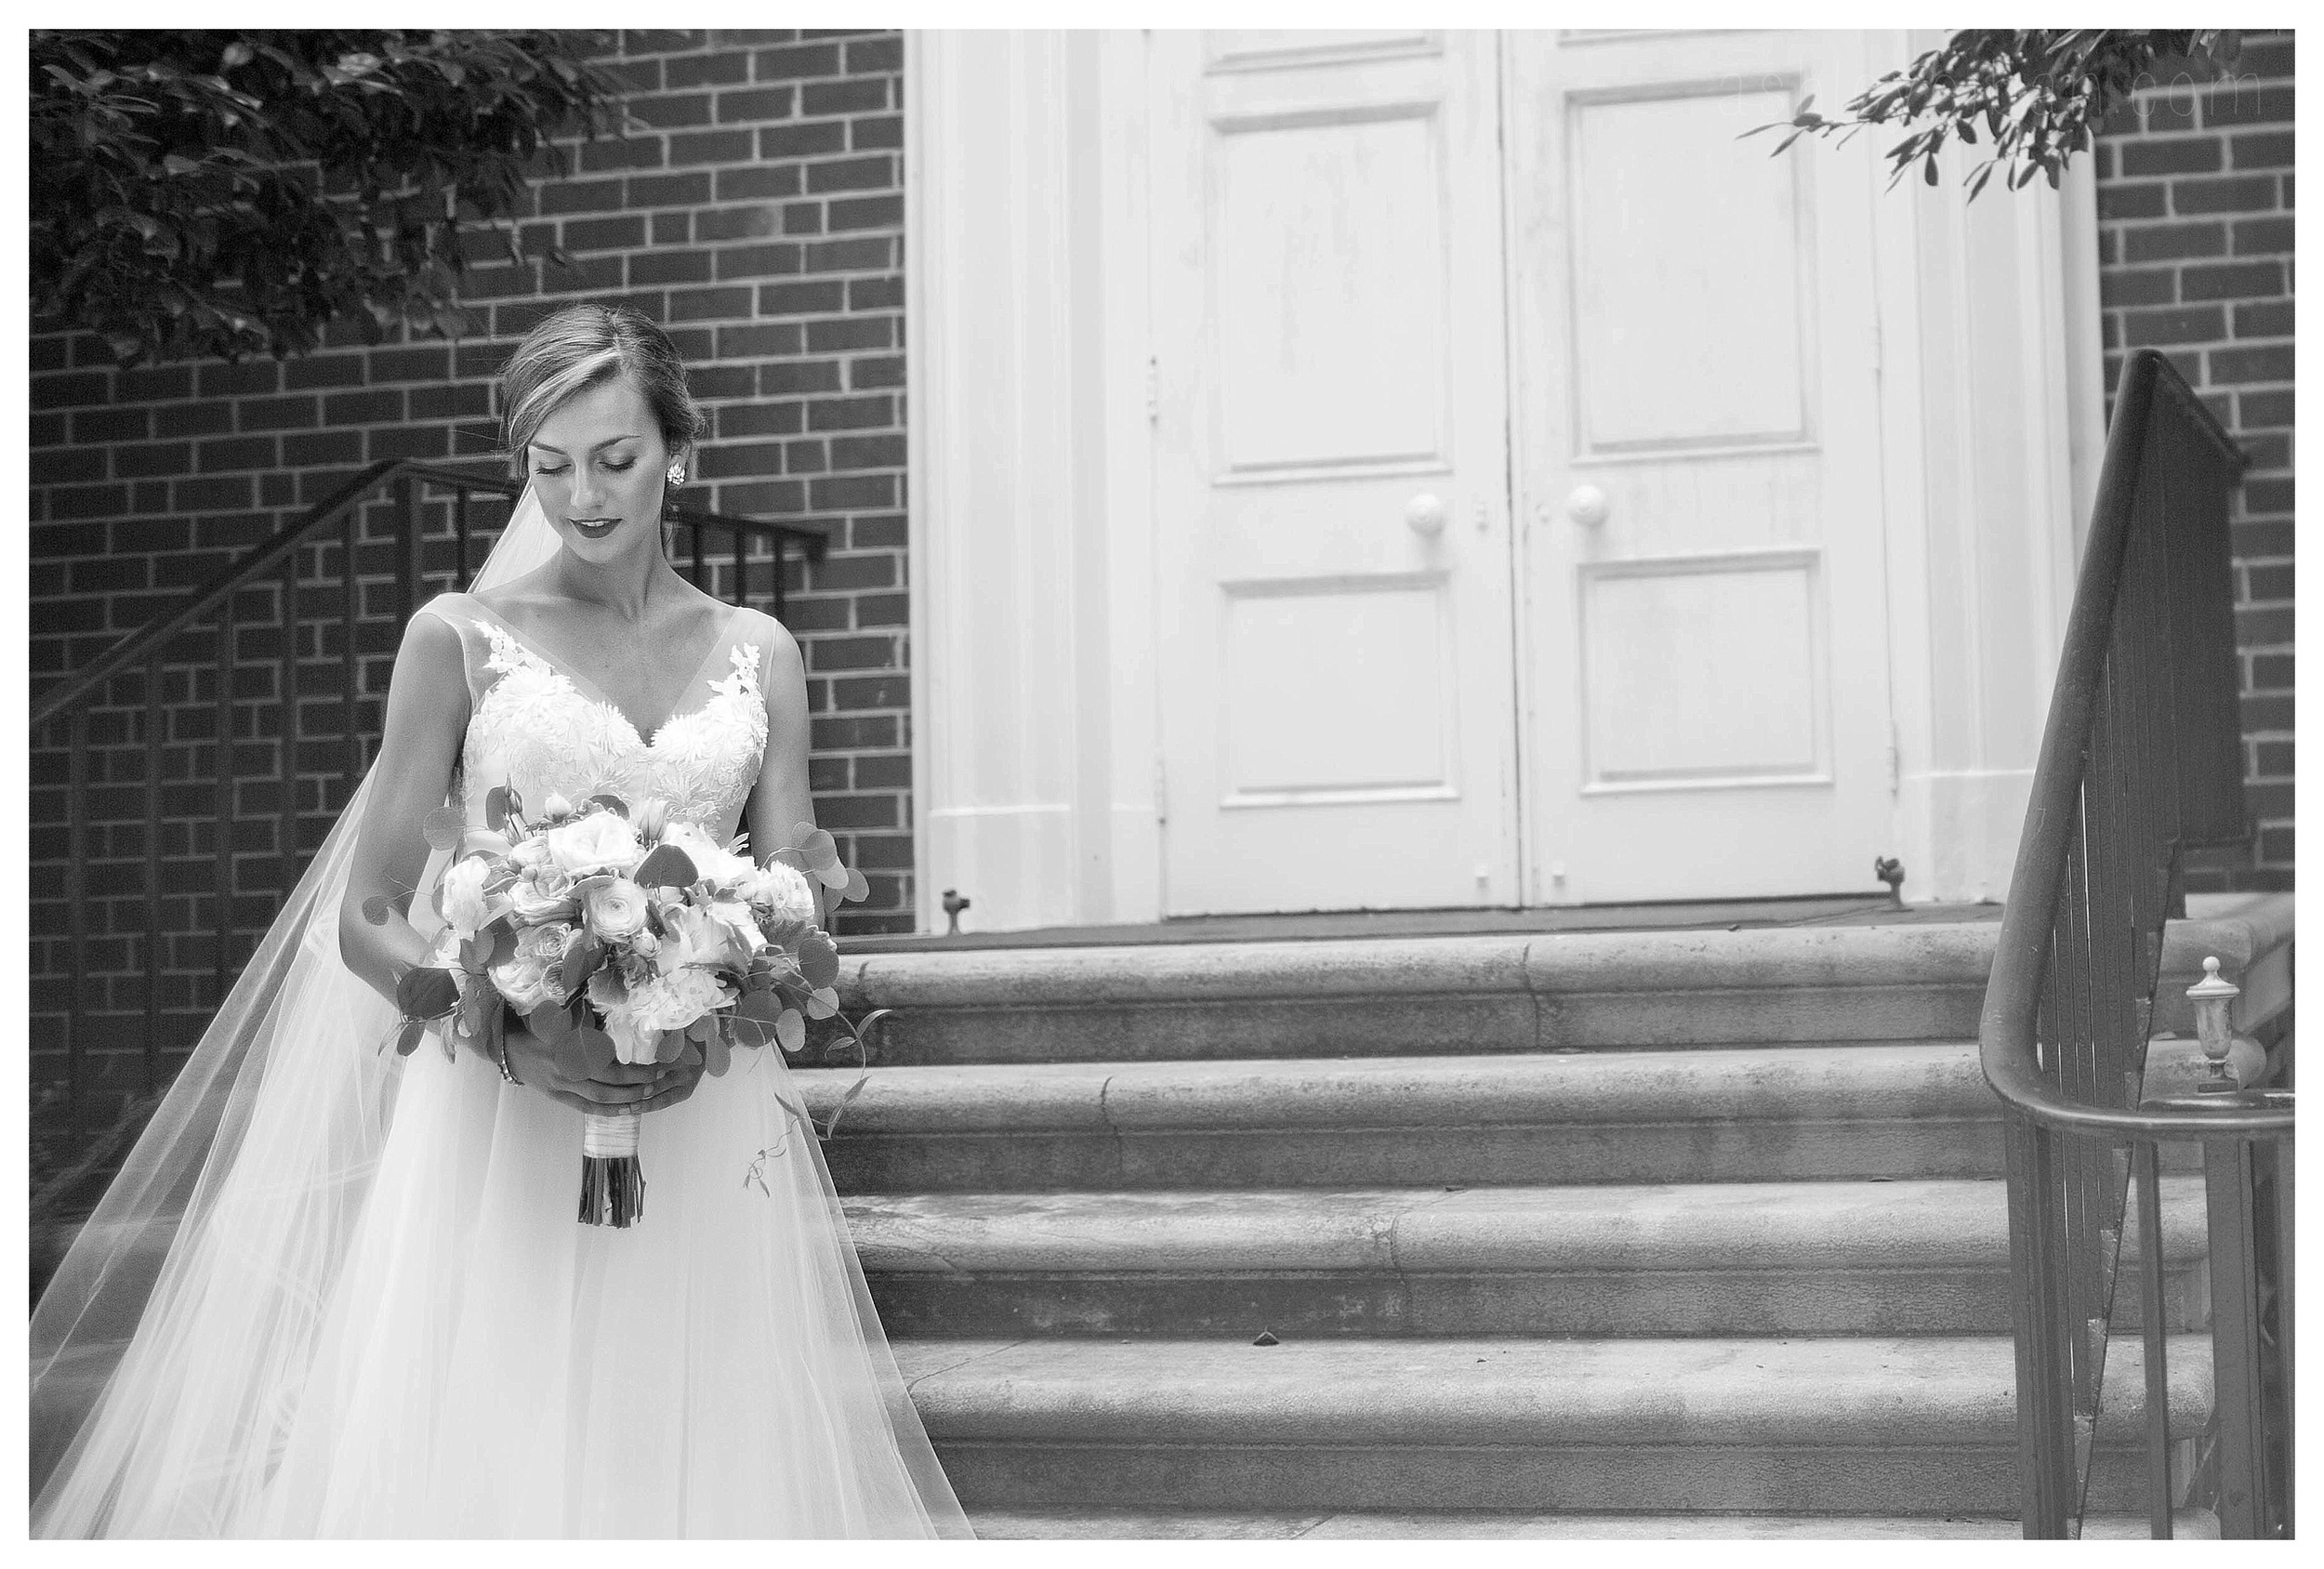 Greensboro, NC Wedding Photographer | Wedding Photographer at Steele Crest | Ashley Eiban Photography | www.ashleyeiban.com